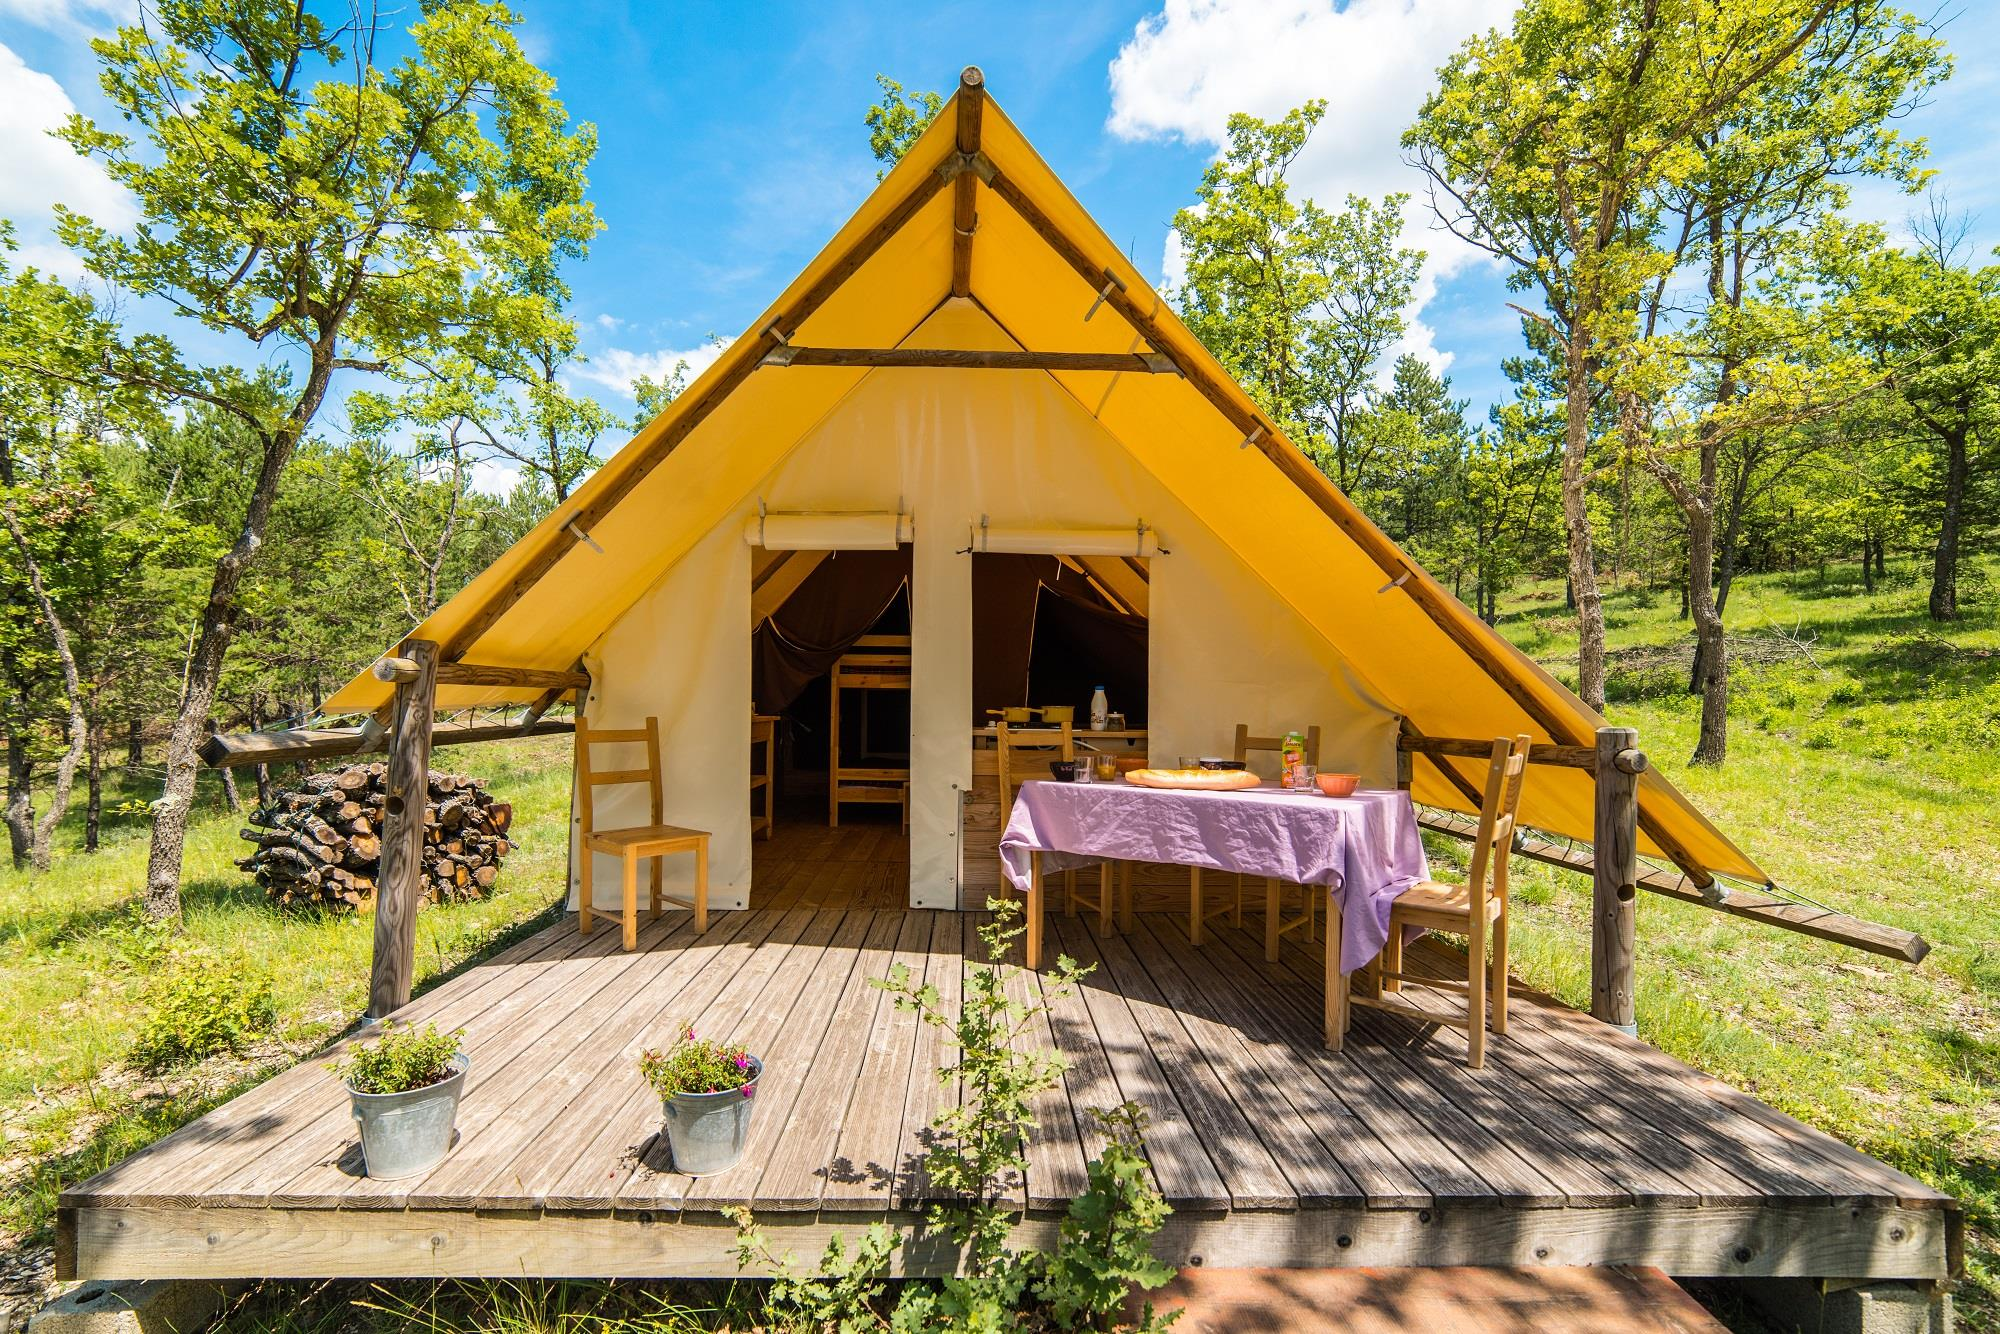 Lodge Tent  20M² (2 Bedrooms) Terrace - Without Toilet Blocks